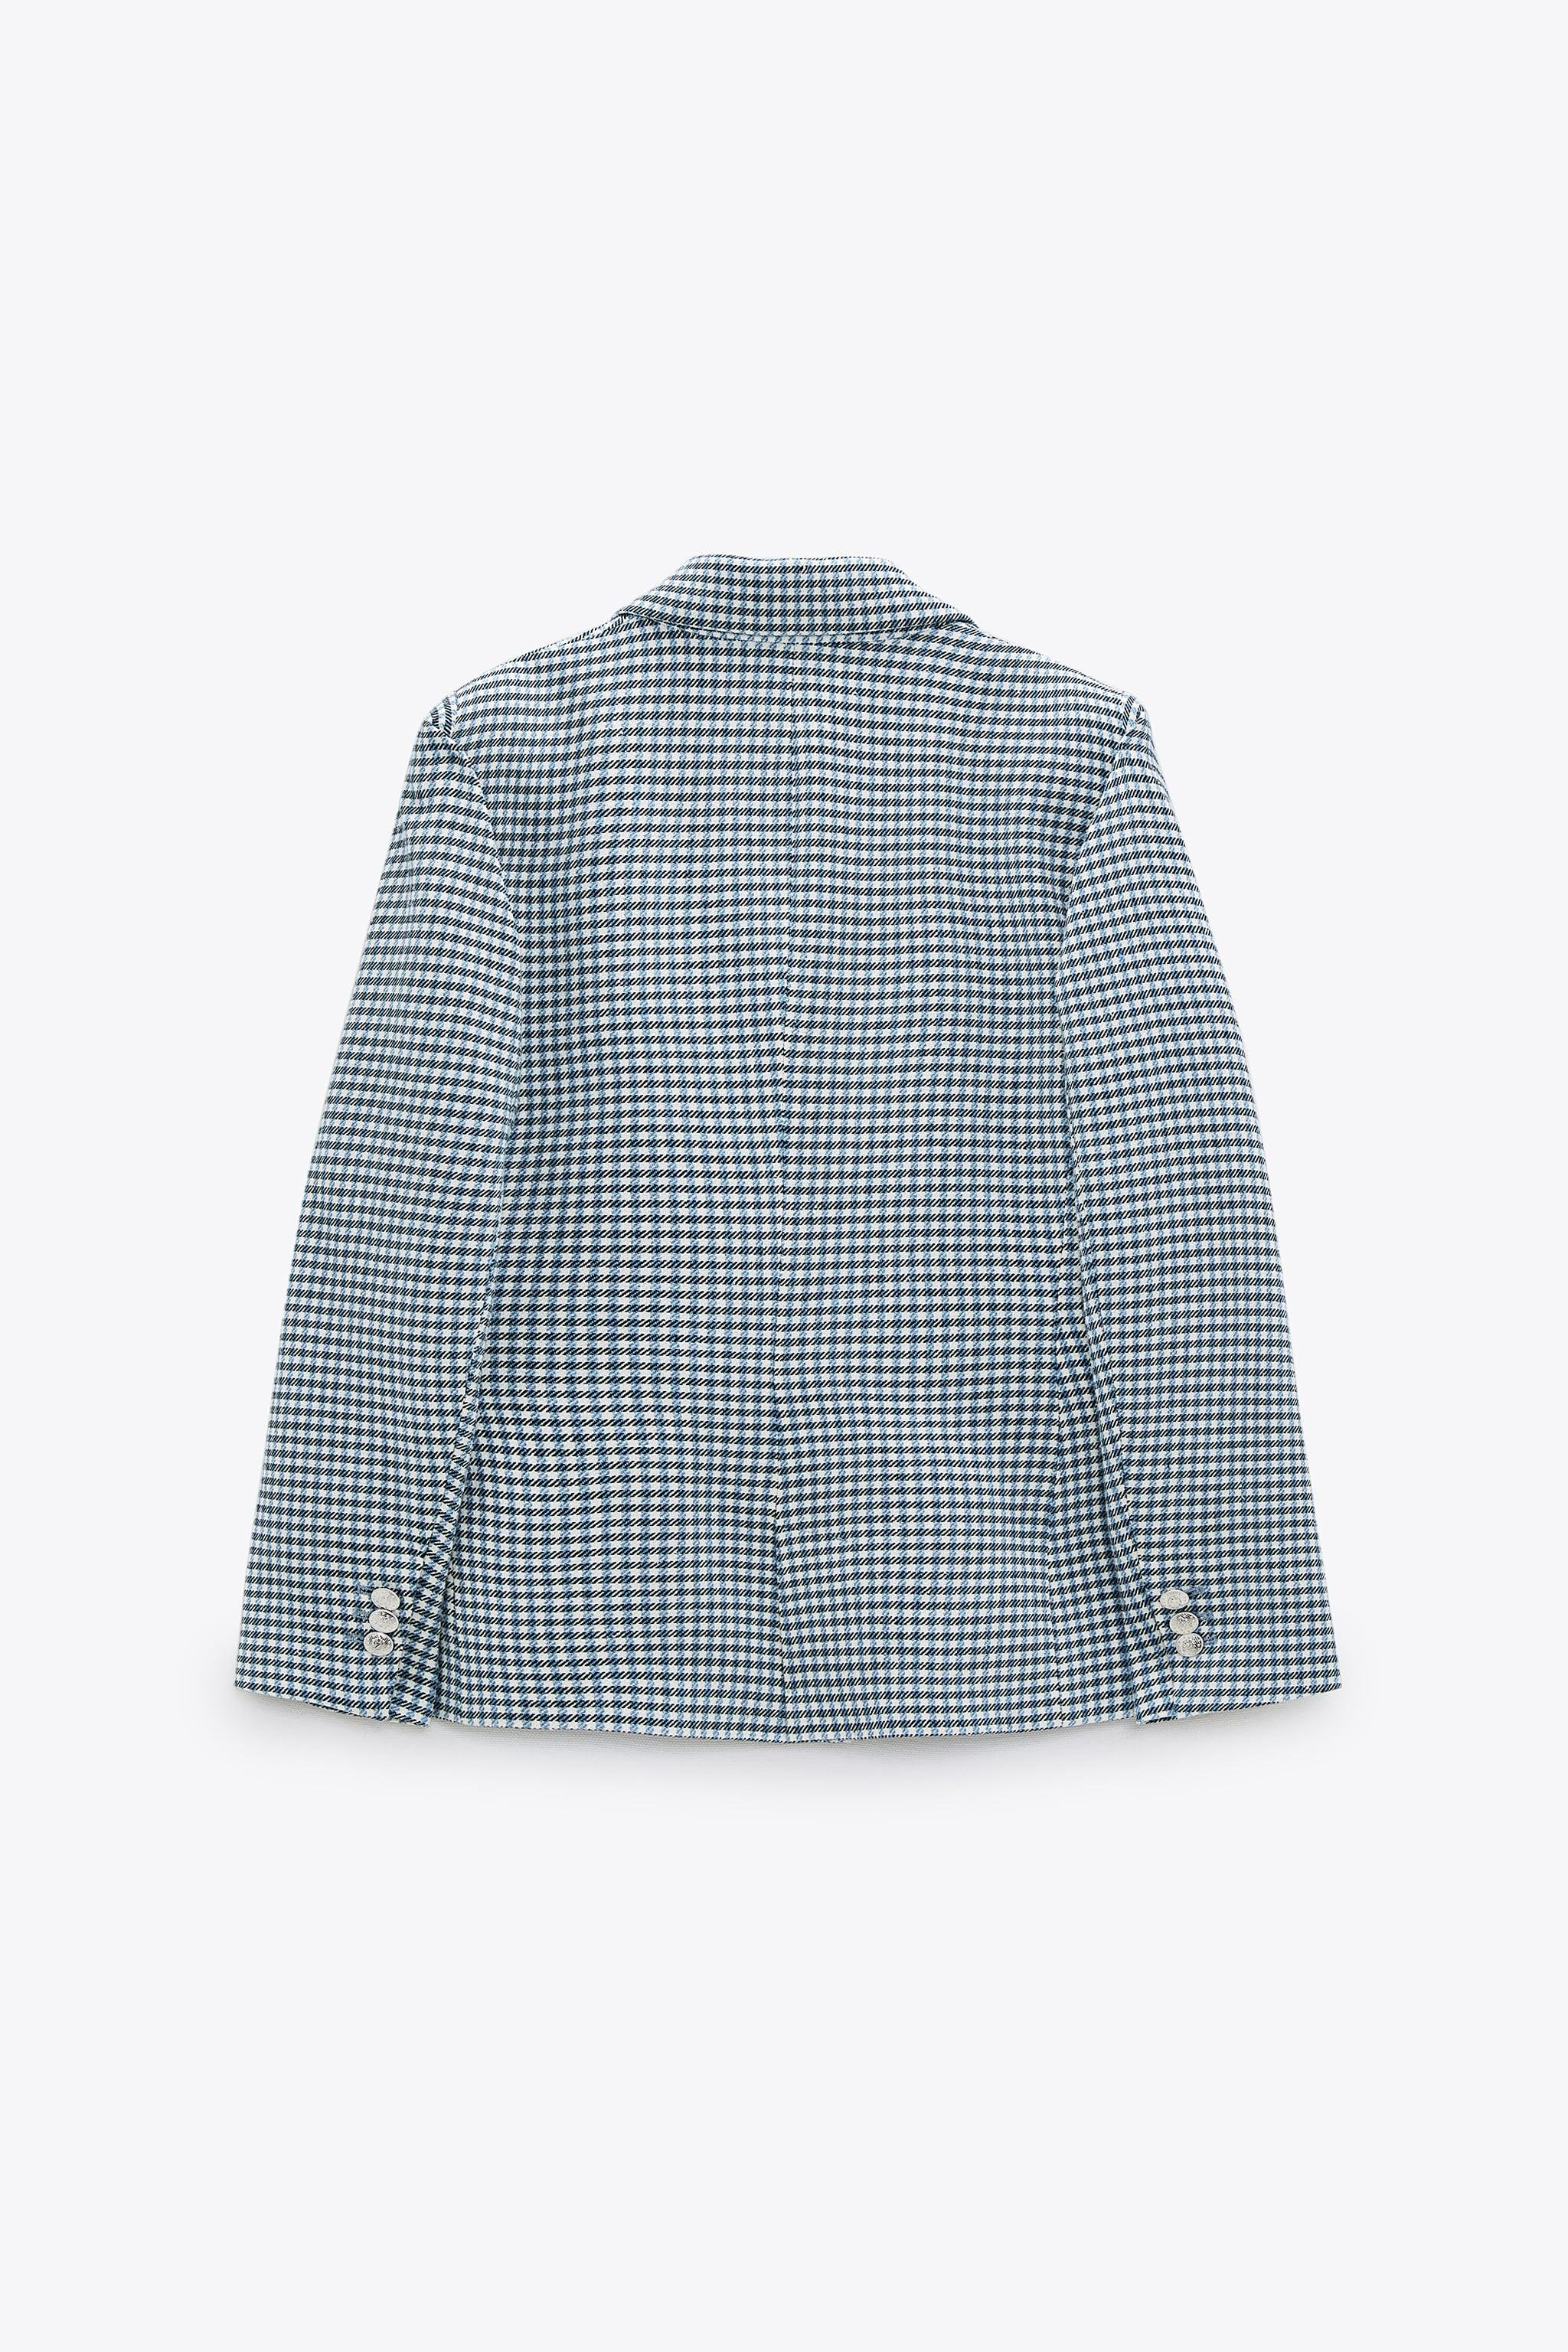 DOUBLE BREASTED HOUNDSTOOTH BLAZER 7